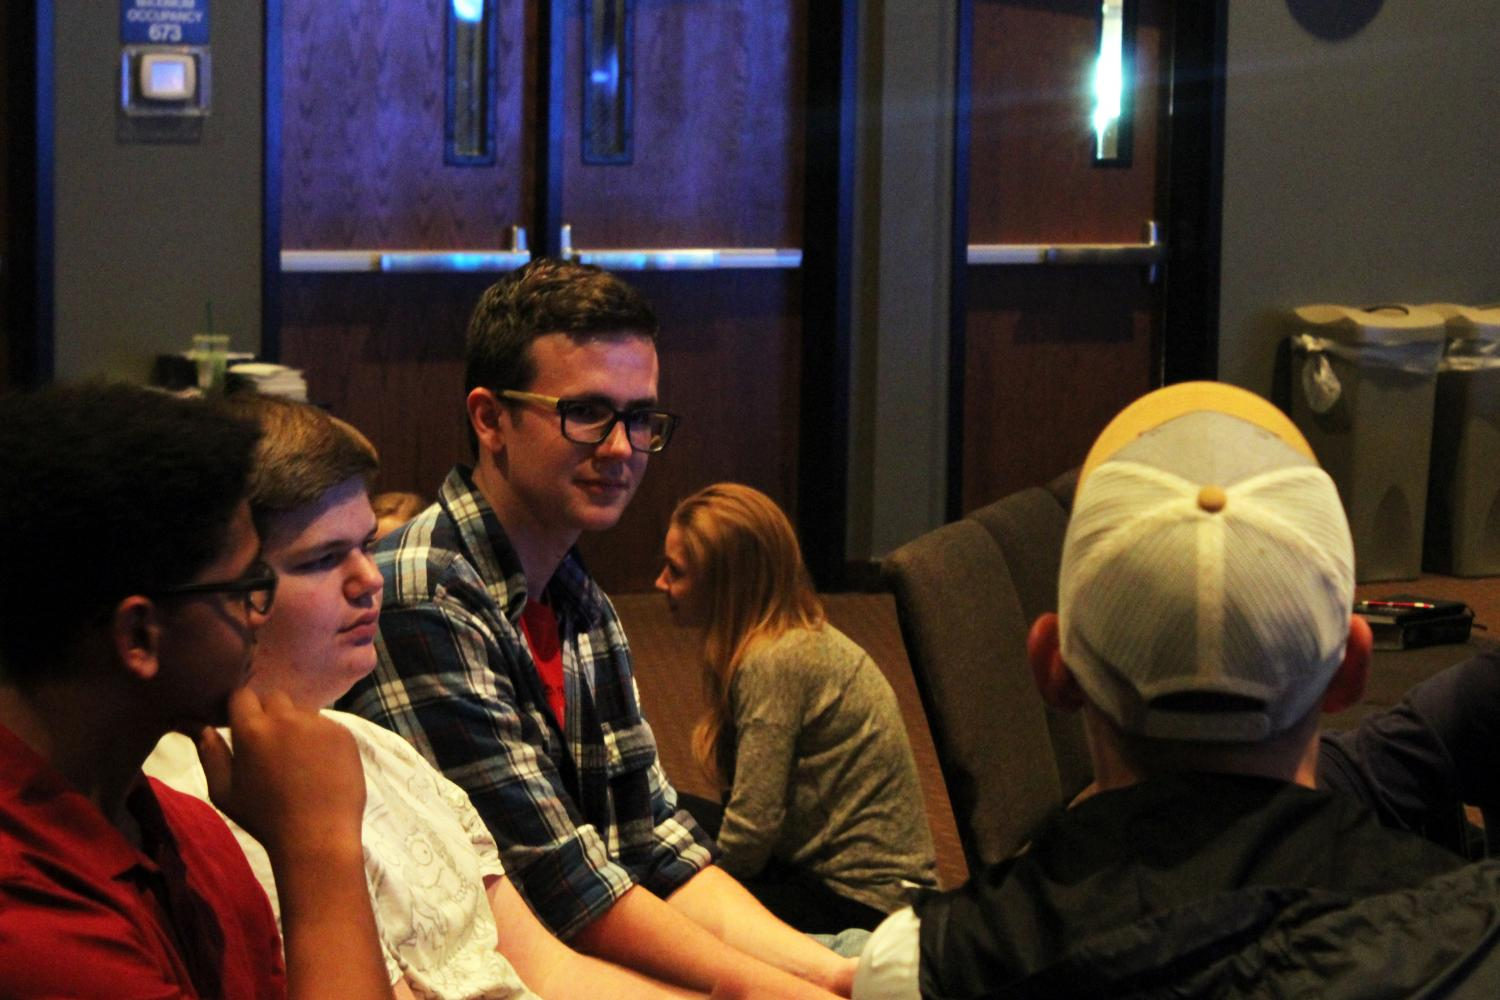 Senior Austin Patterson discusses in his youth group on September 27.